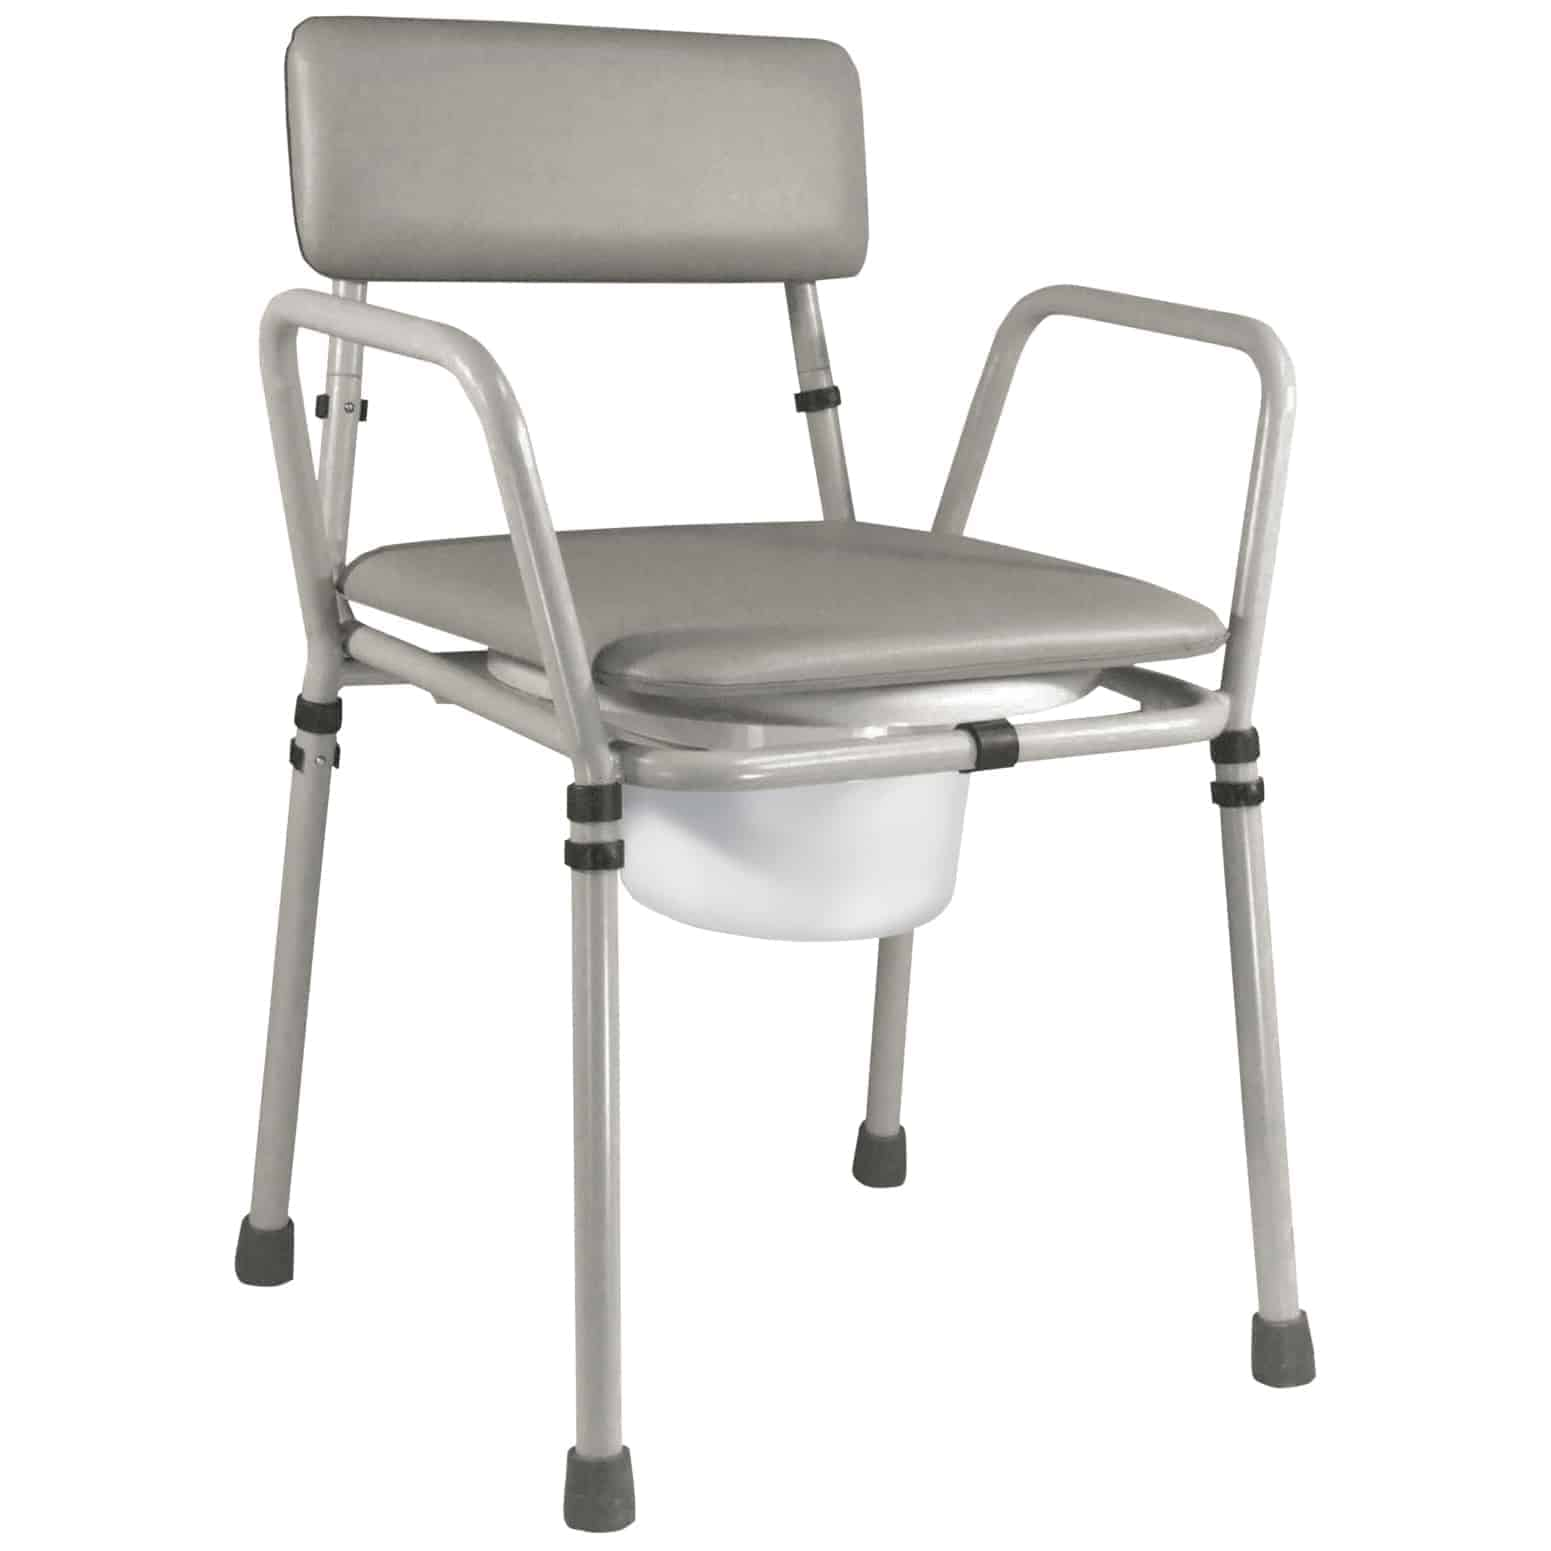 Height Adjustable Chair Essex Height Adjustable Commode Chair